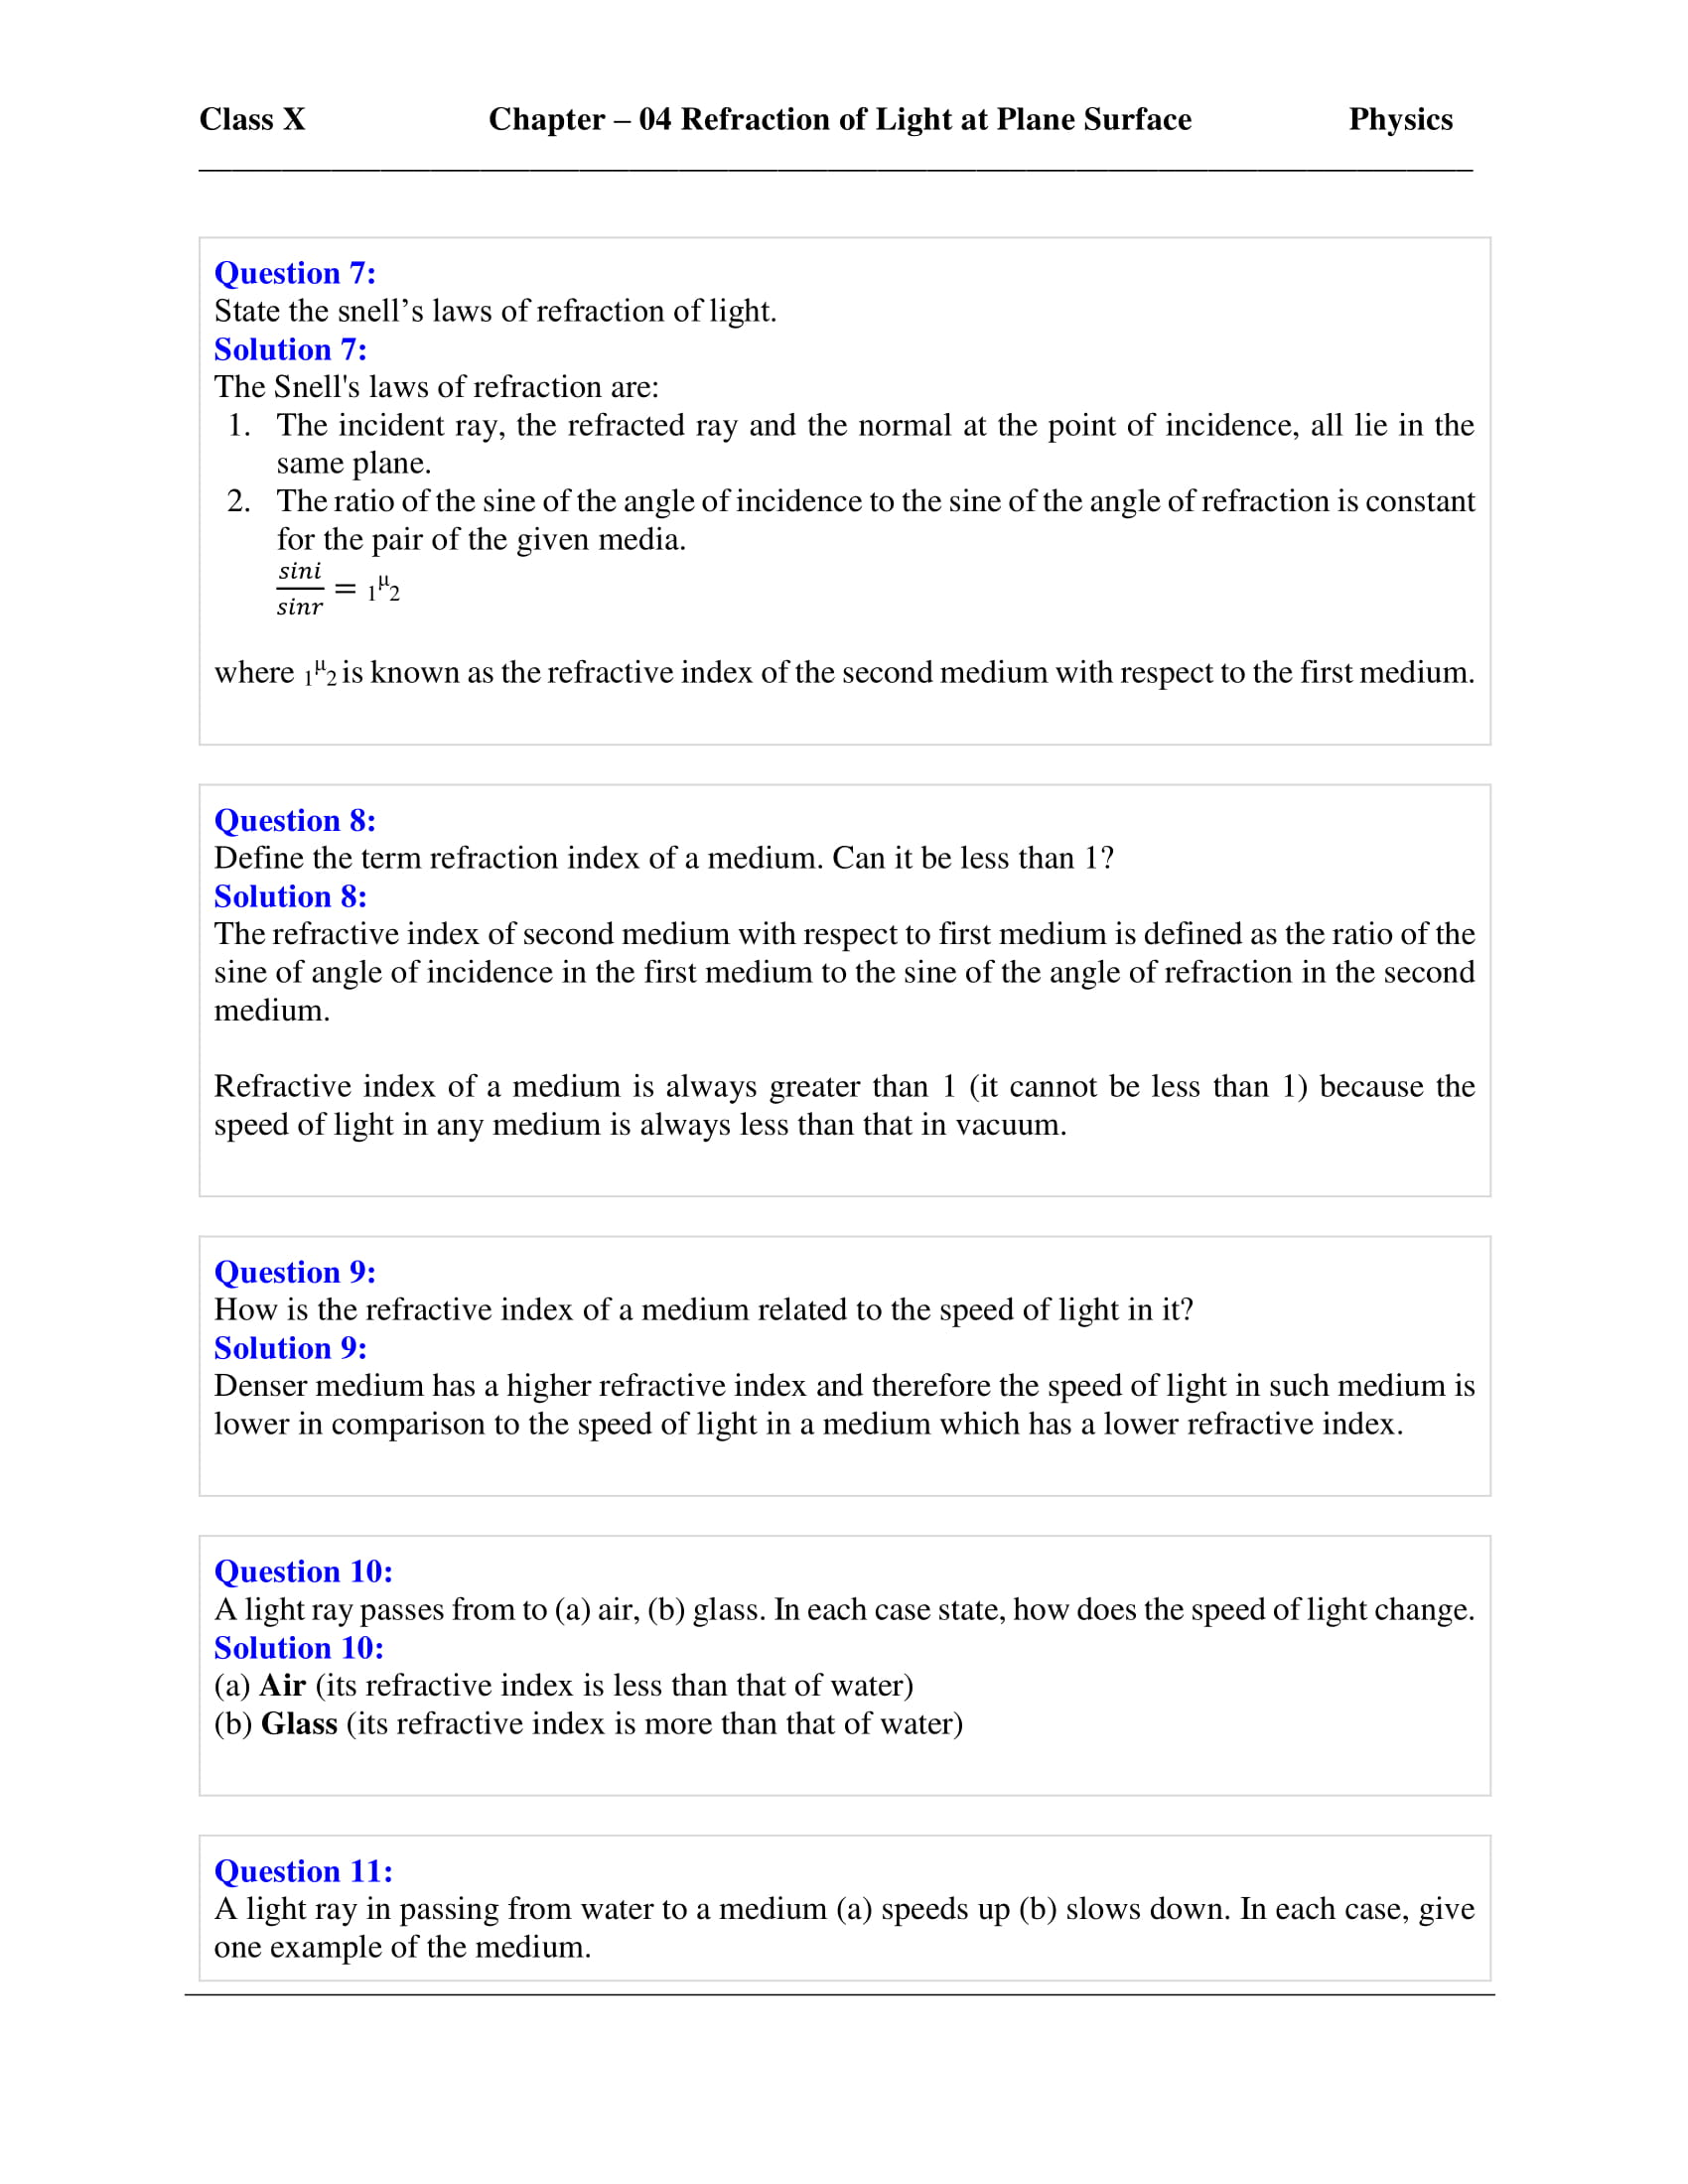 icse-selina-physics-solutions-class-10-chapter-4-refraction-of-light-at-plane-surfaces-03